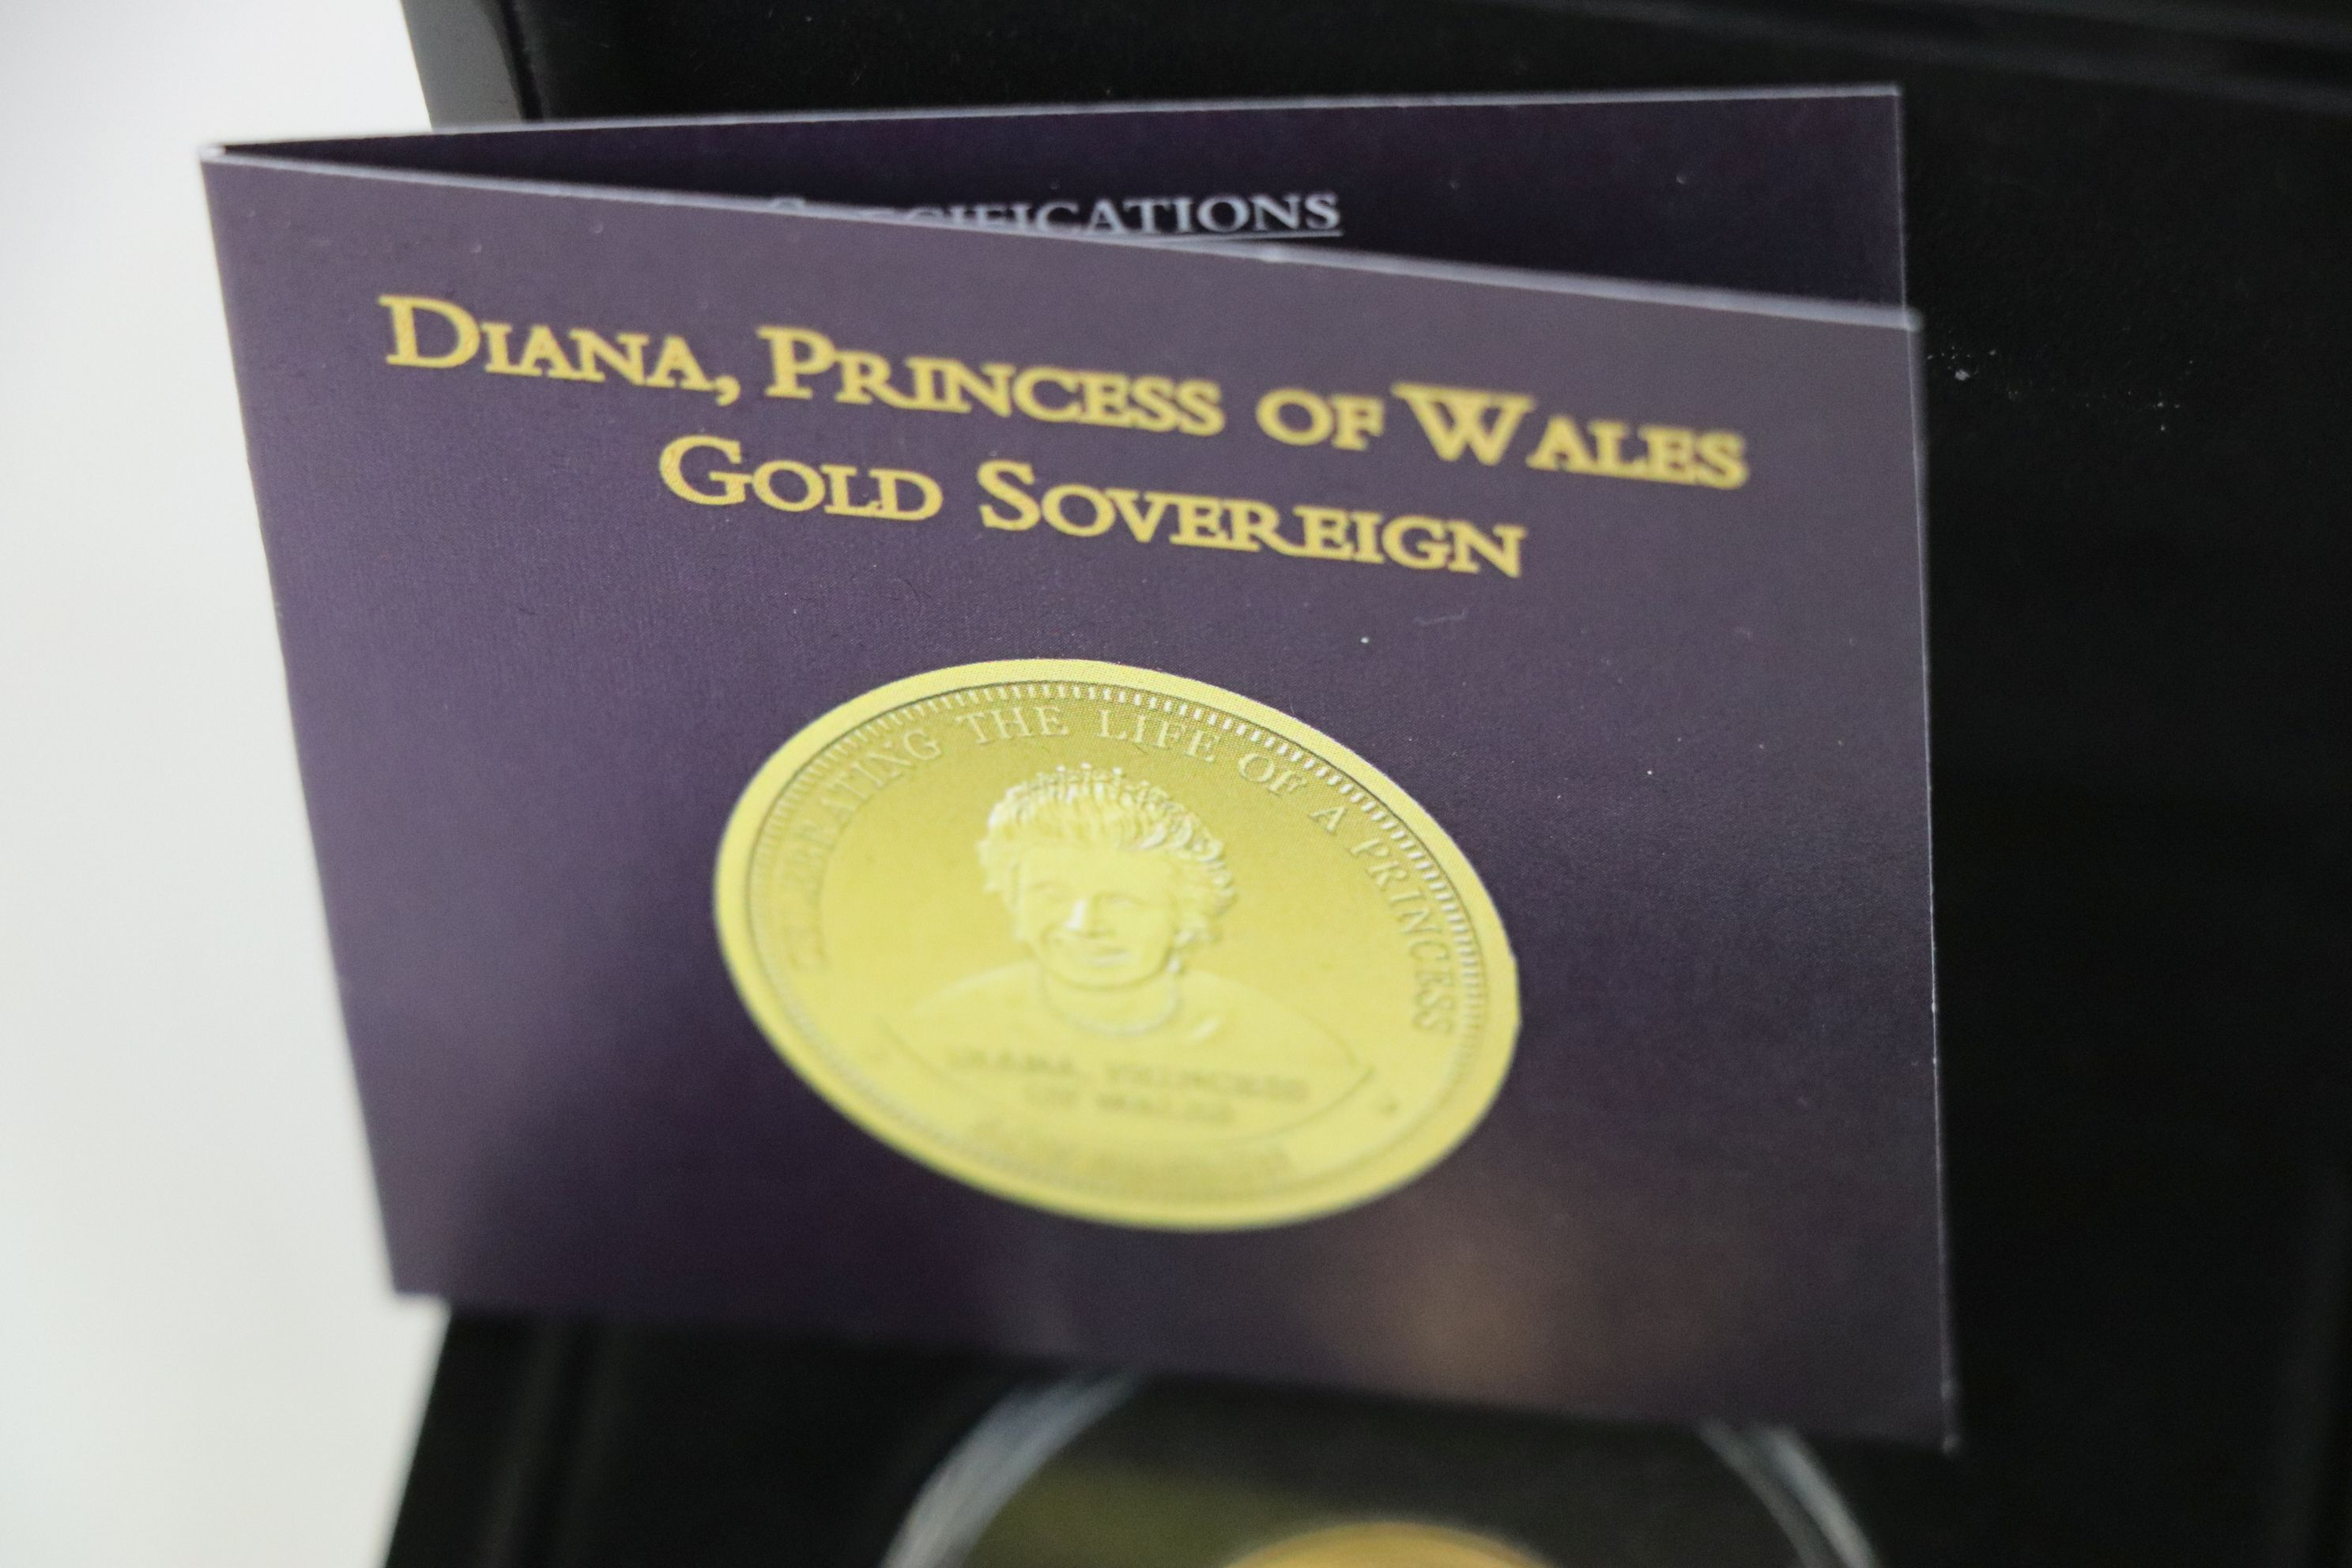 A cased Bradford Exchange limited edition Tristan Da Cunha 2007 Diana Princess of Wales gold proof - Image 4 of 5